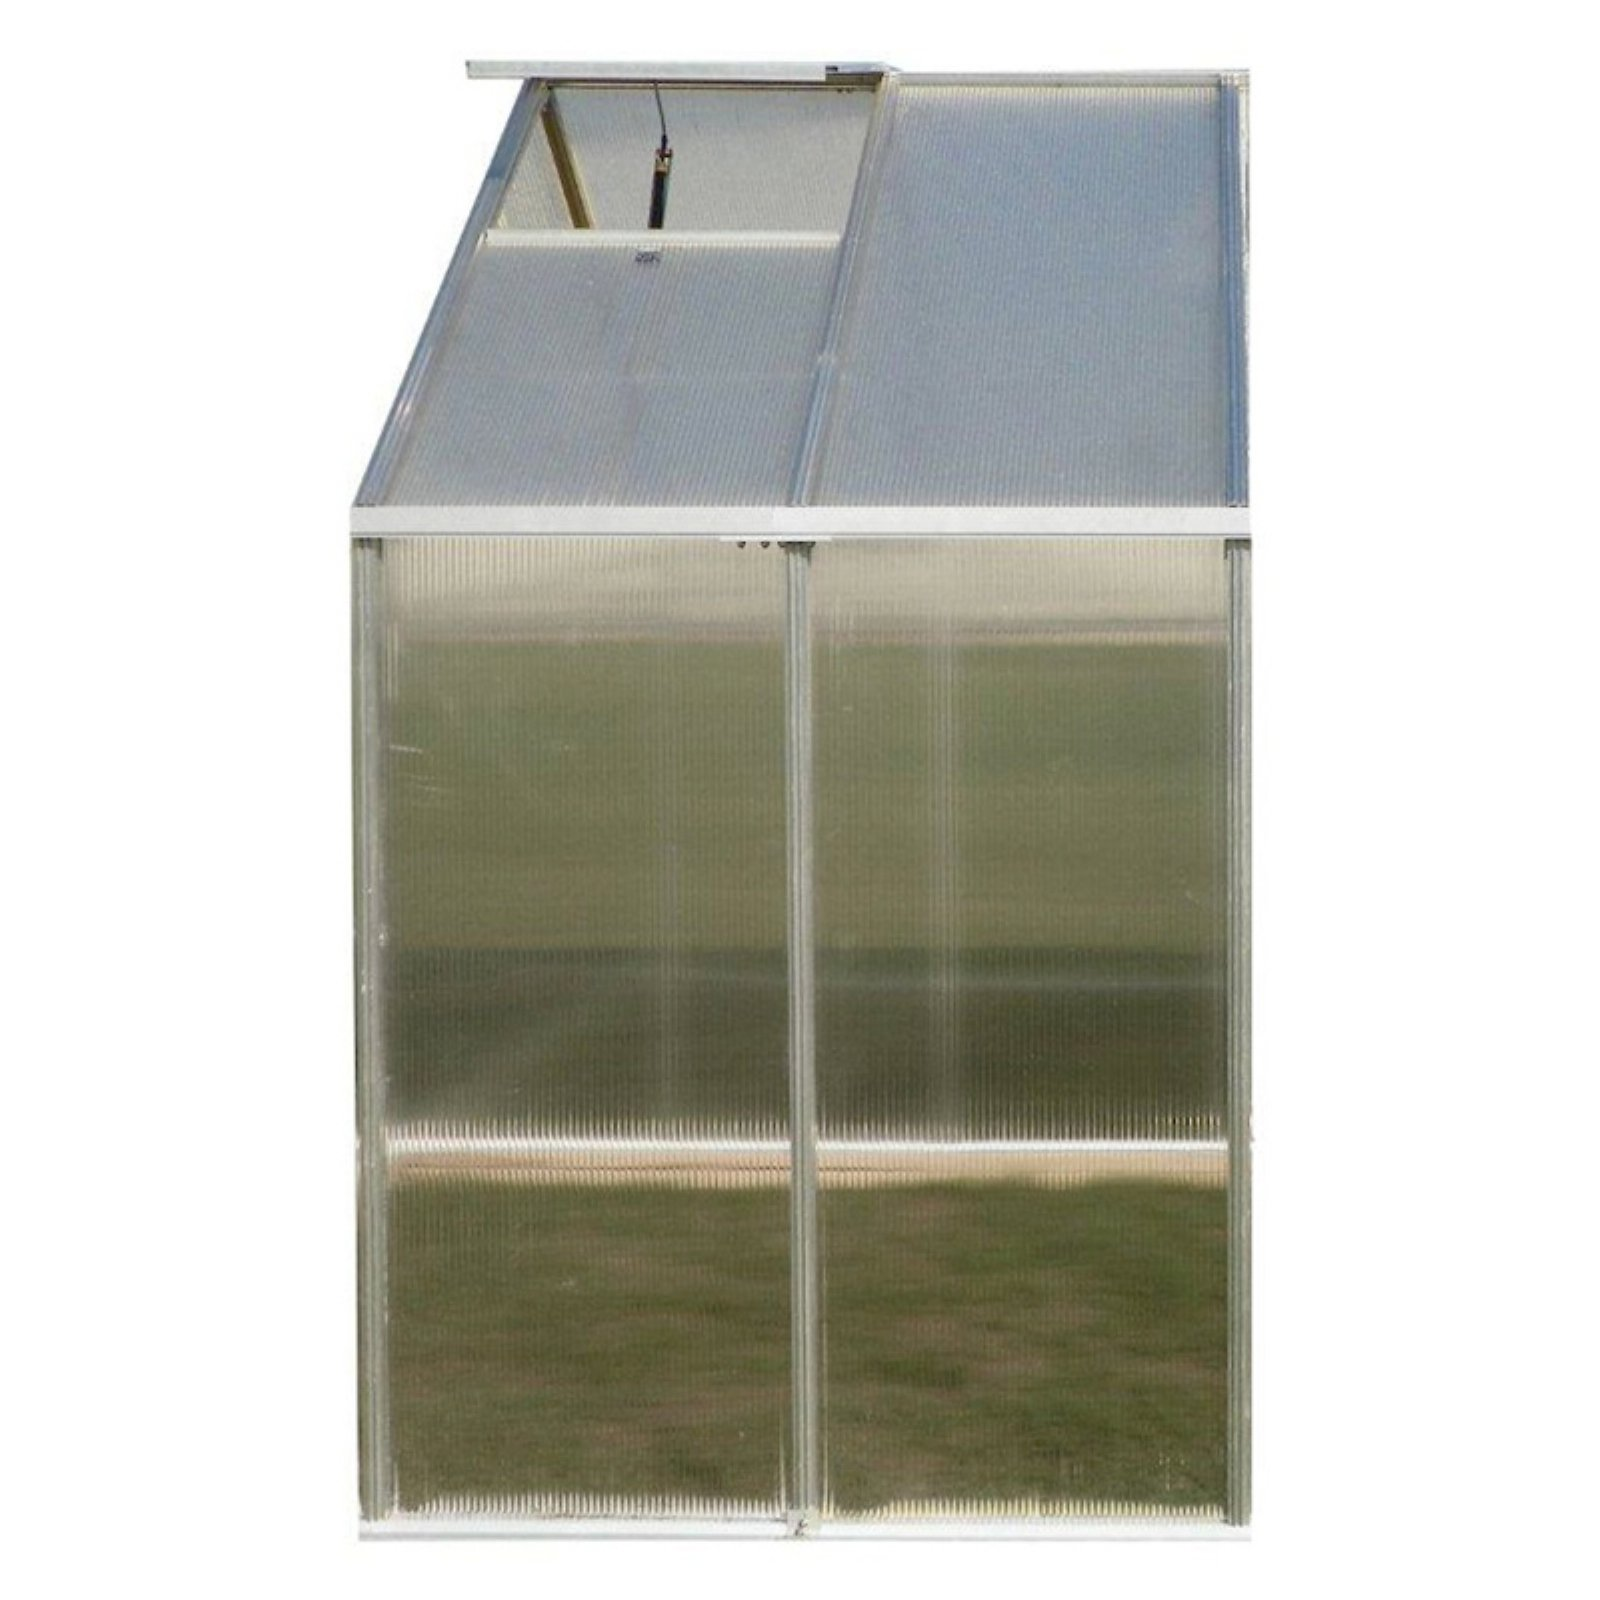 Monticello 8 x 4 ft. PREMIUM Greenhouse EXTENSION Kit by Overstock